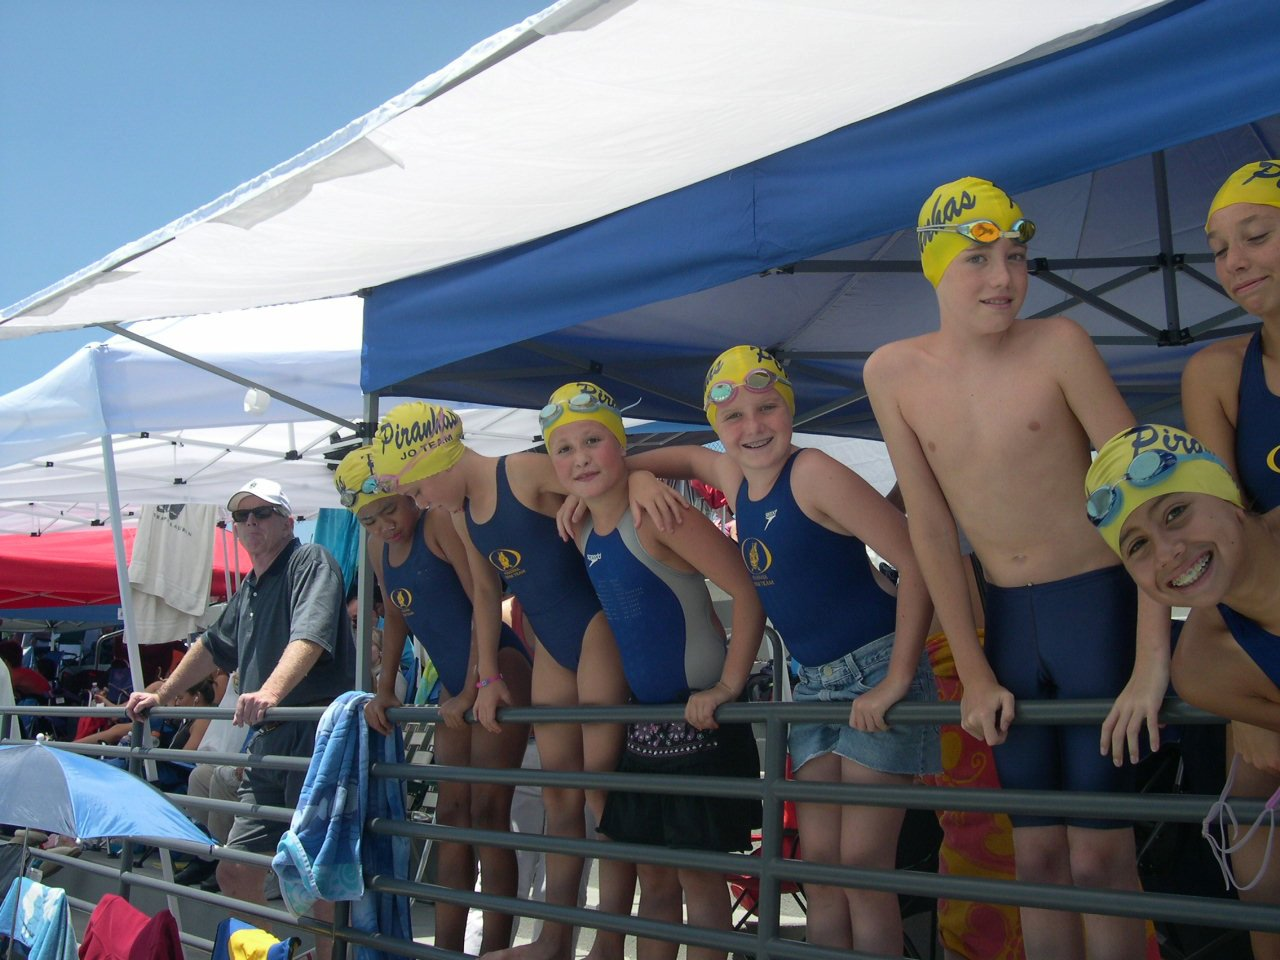 my confessions as a helicopter mom bleuwater my kids and their teammates at a meet in irvine years ago